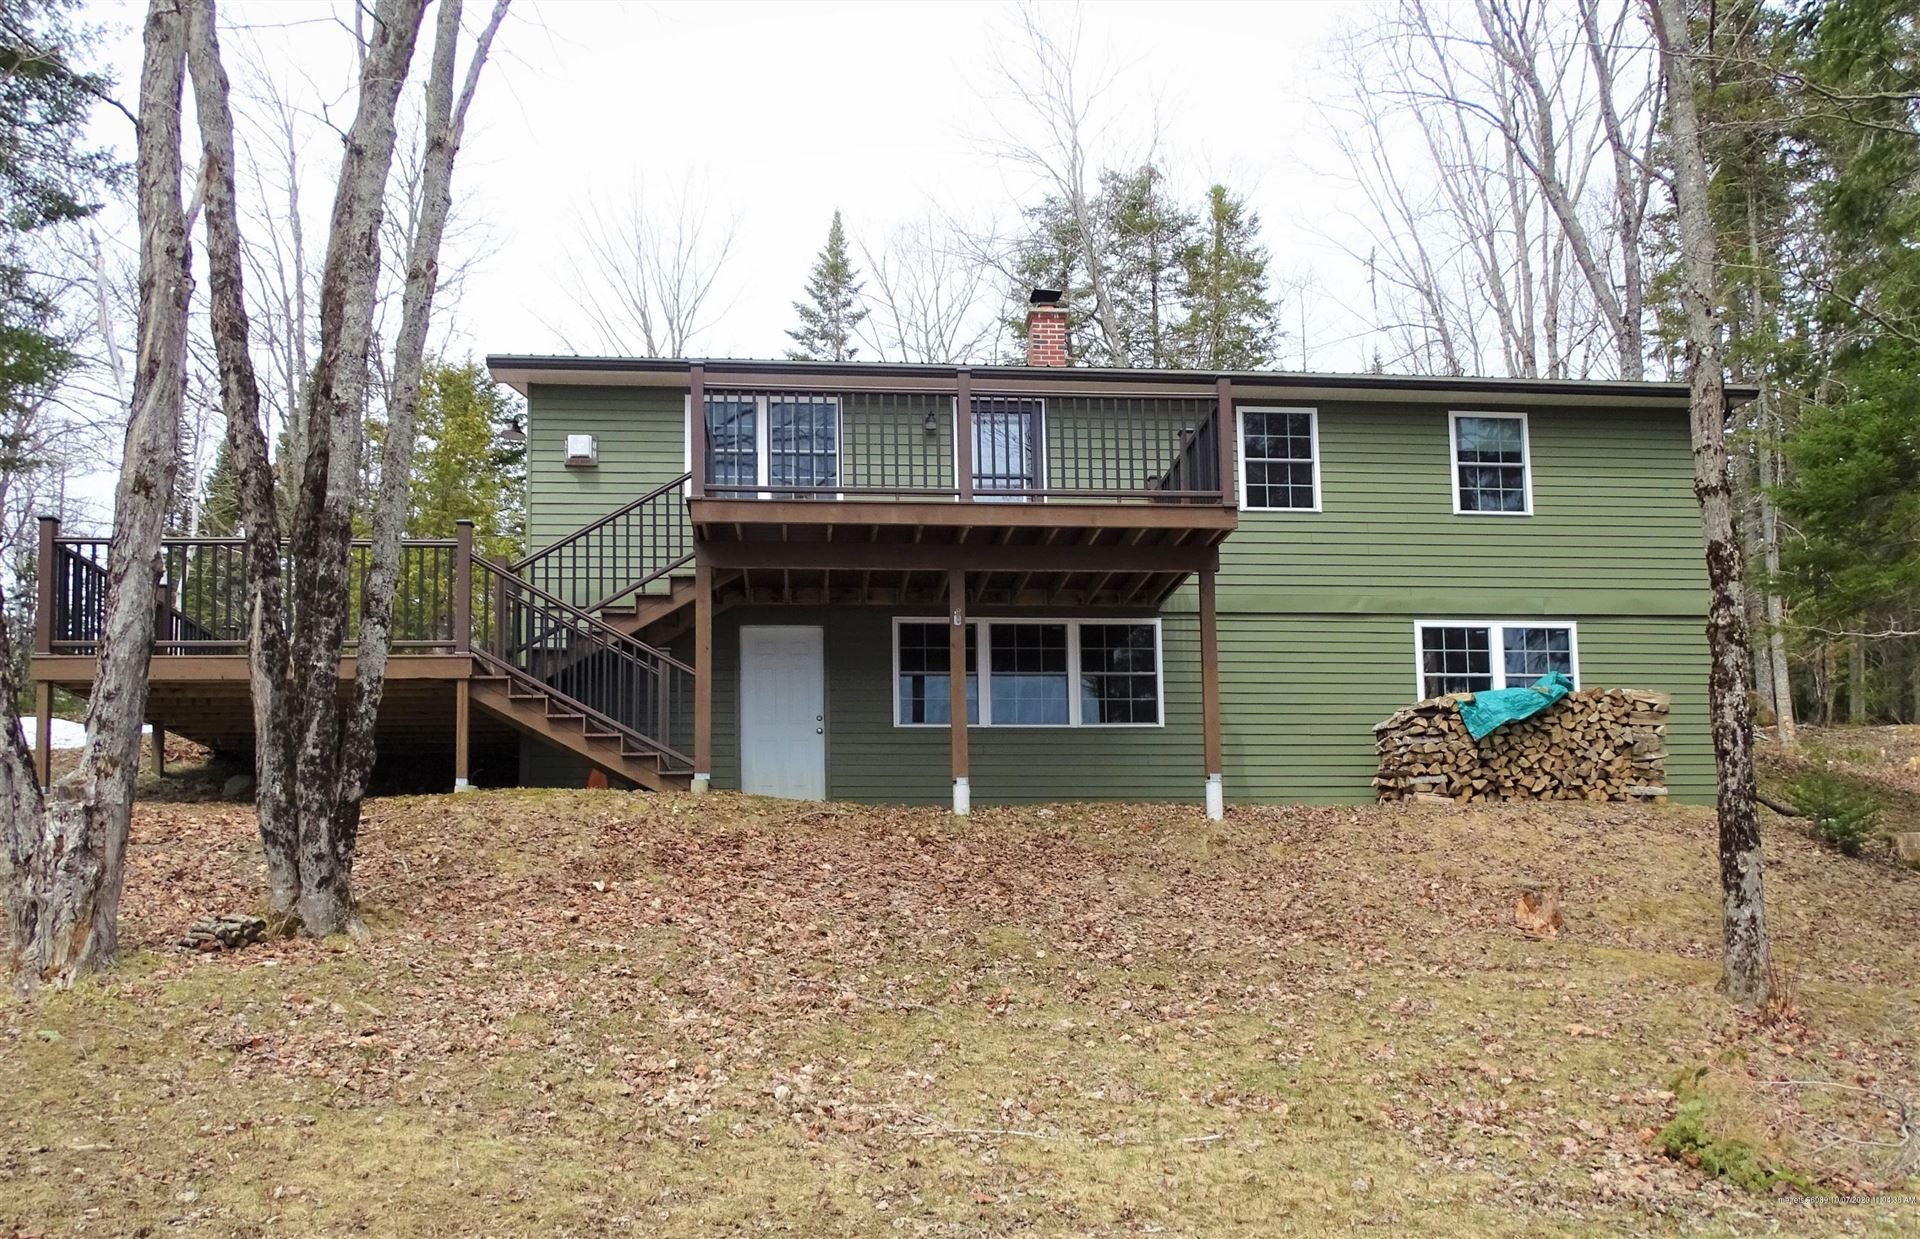 Photo of 83 Morse Road, Fort Fairfield, ME 04742 (MLS # 1451442)